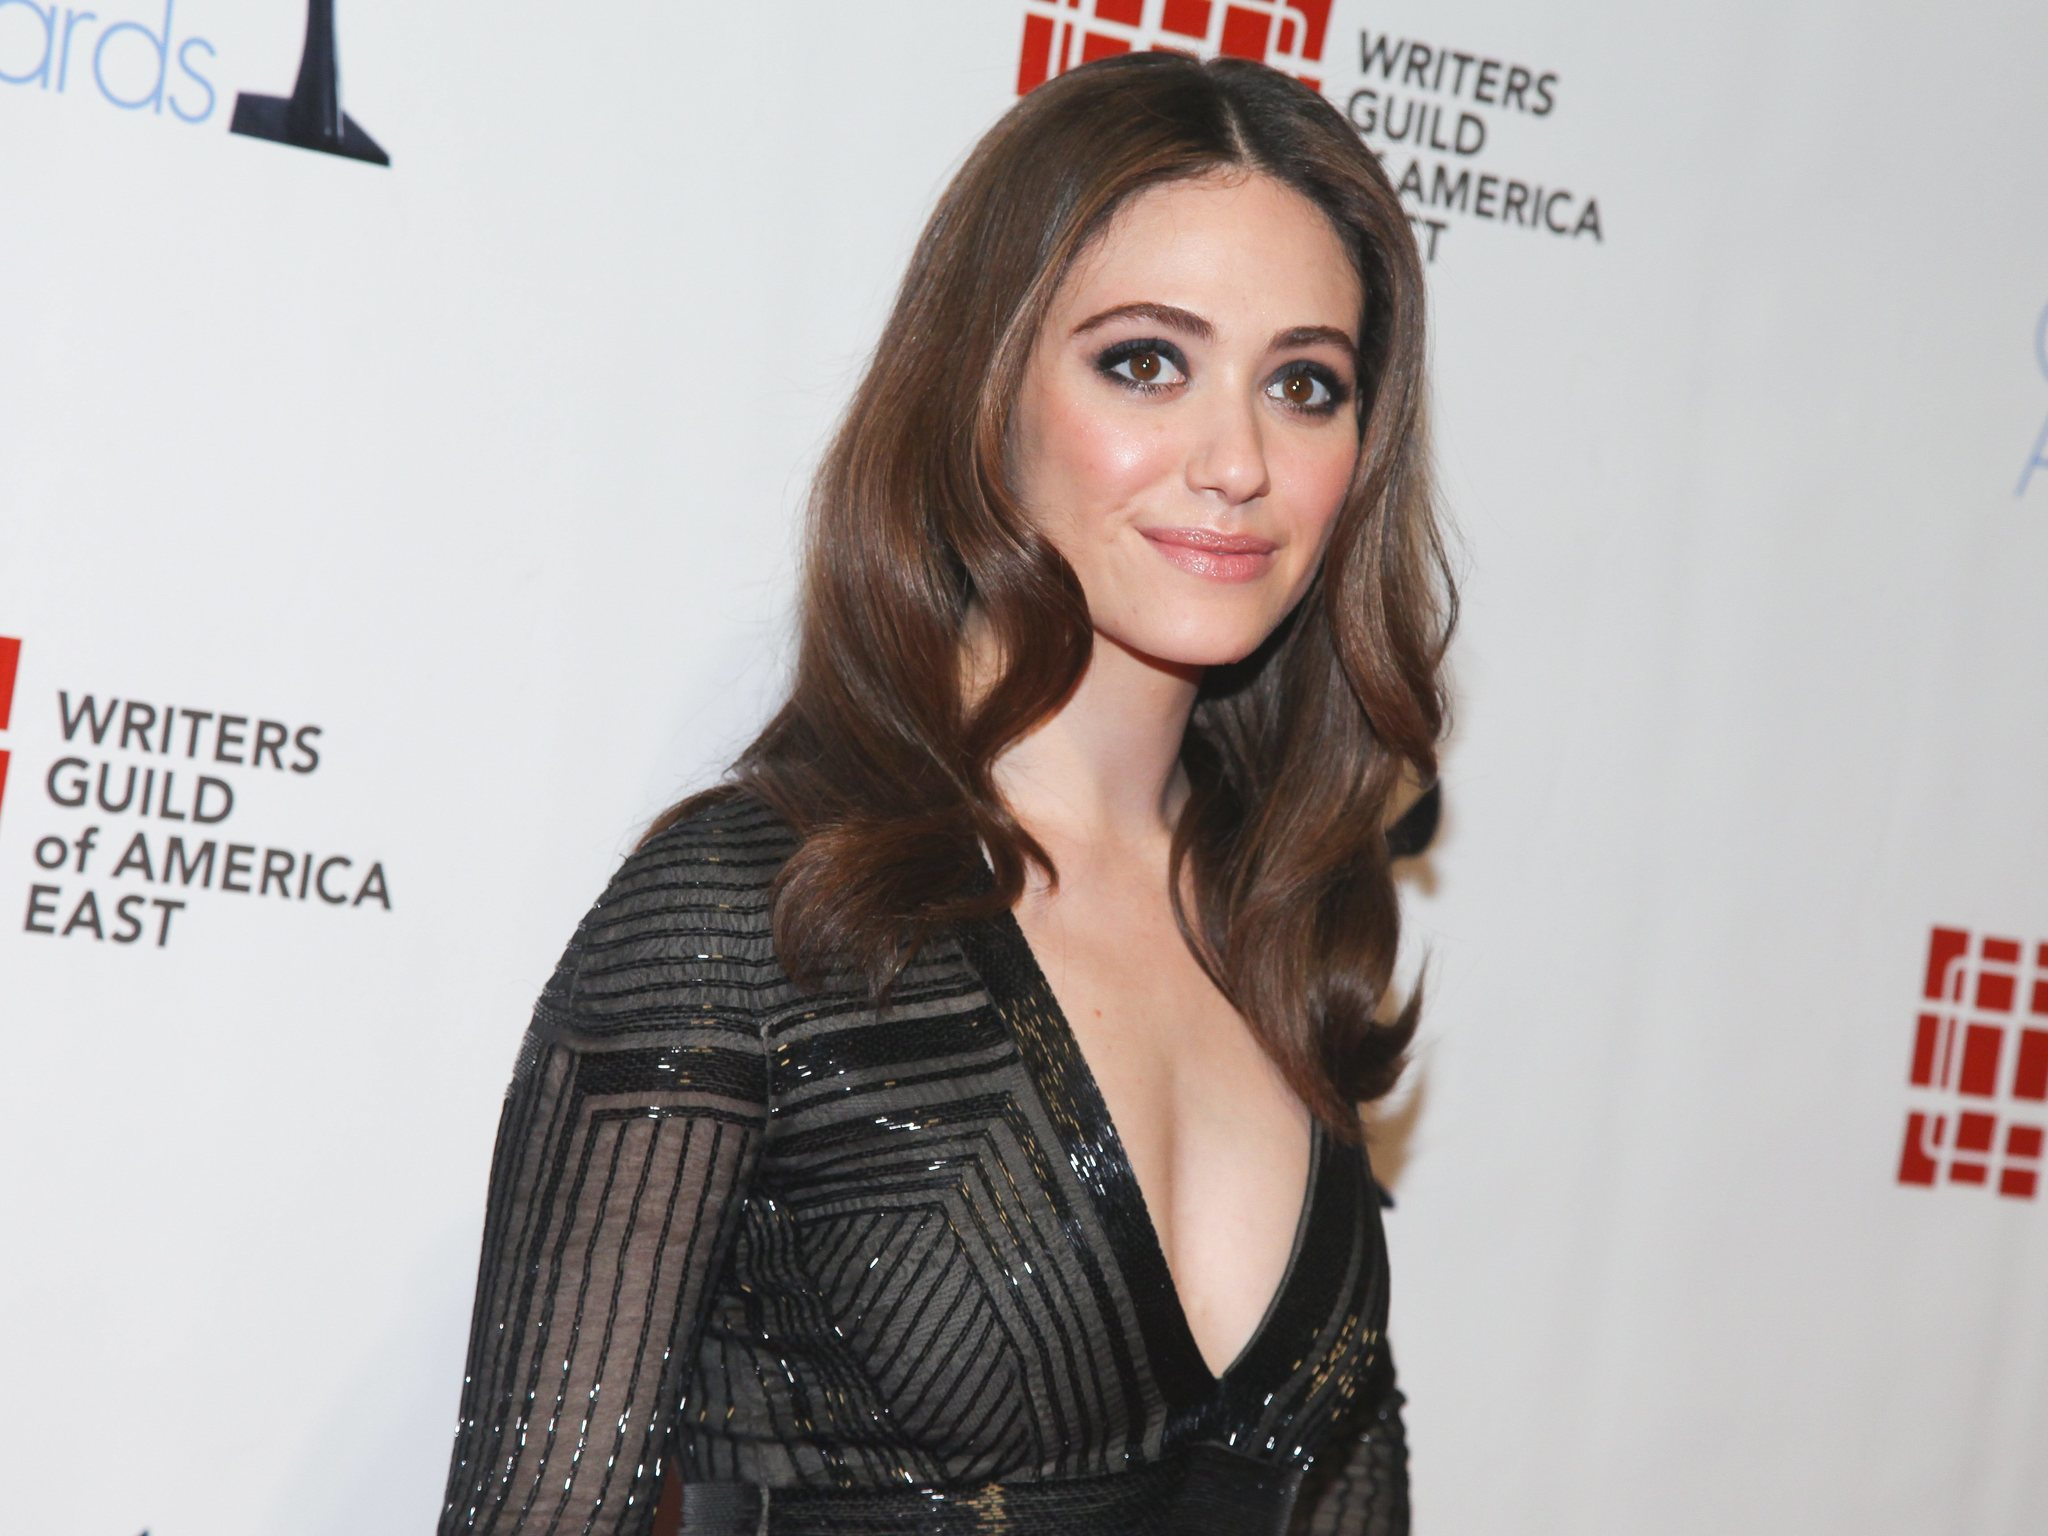 Images Emmy Rossum nudes (66 foto and video), Pussy, Paparazzi, Selfie, braless 2015